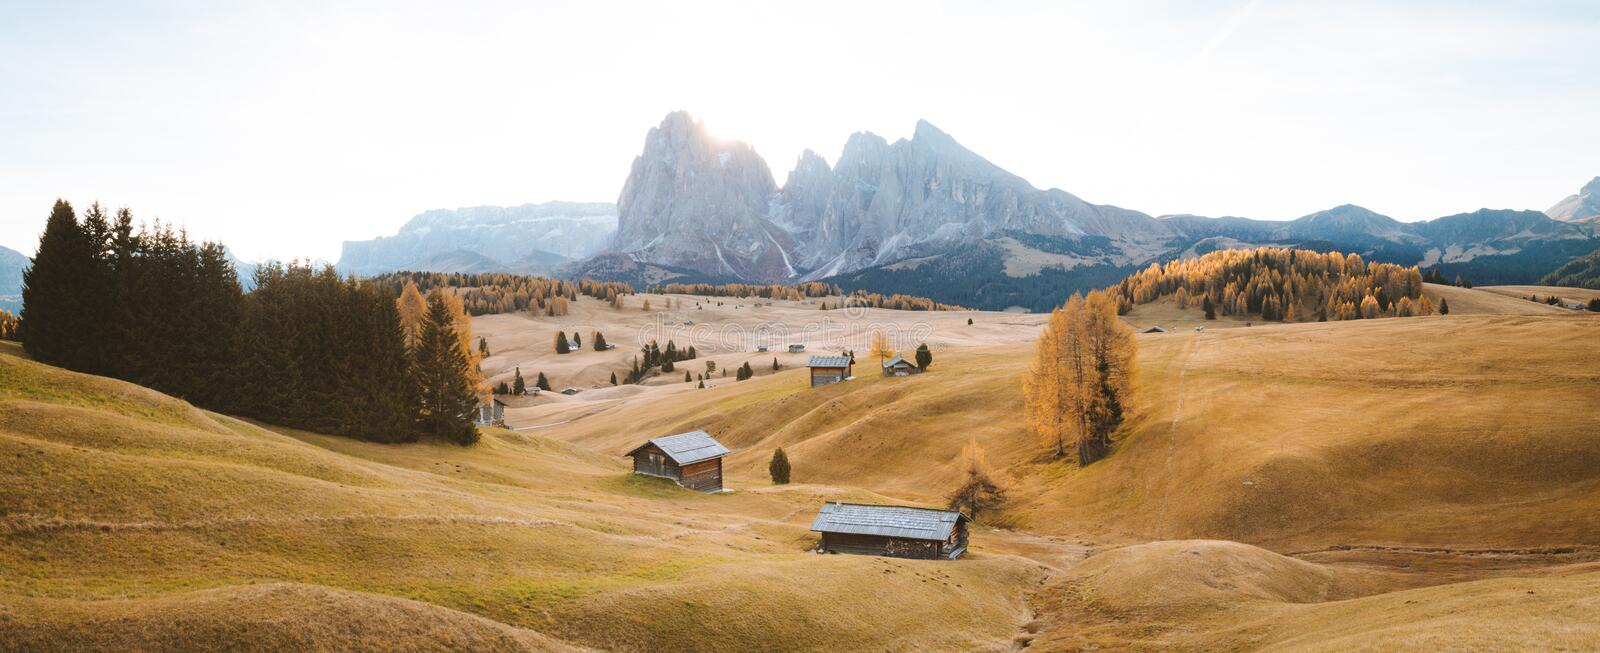 Alpe di Siusi at sunrise, Dolomites, South Tyrol, Italy. Beautiful view of traditional wooden mountain chalets on scenic Alpe di Siusi with famous Langkofel royalty free stock image